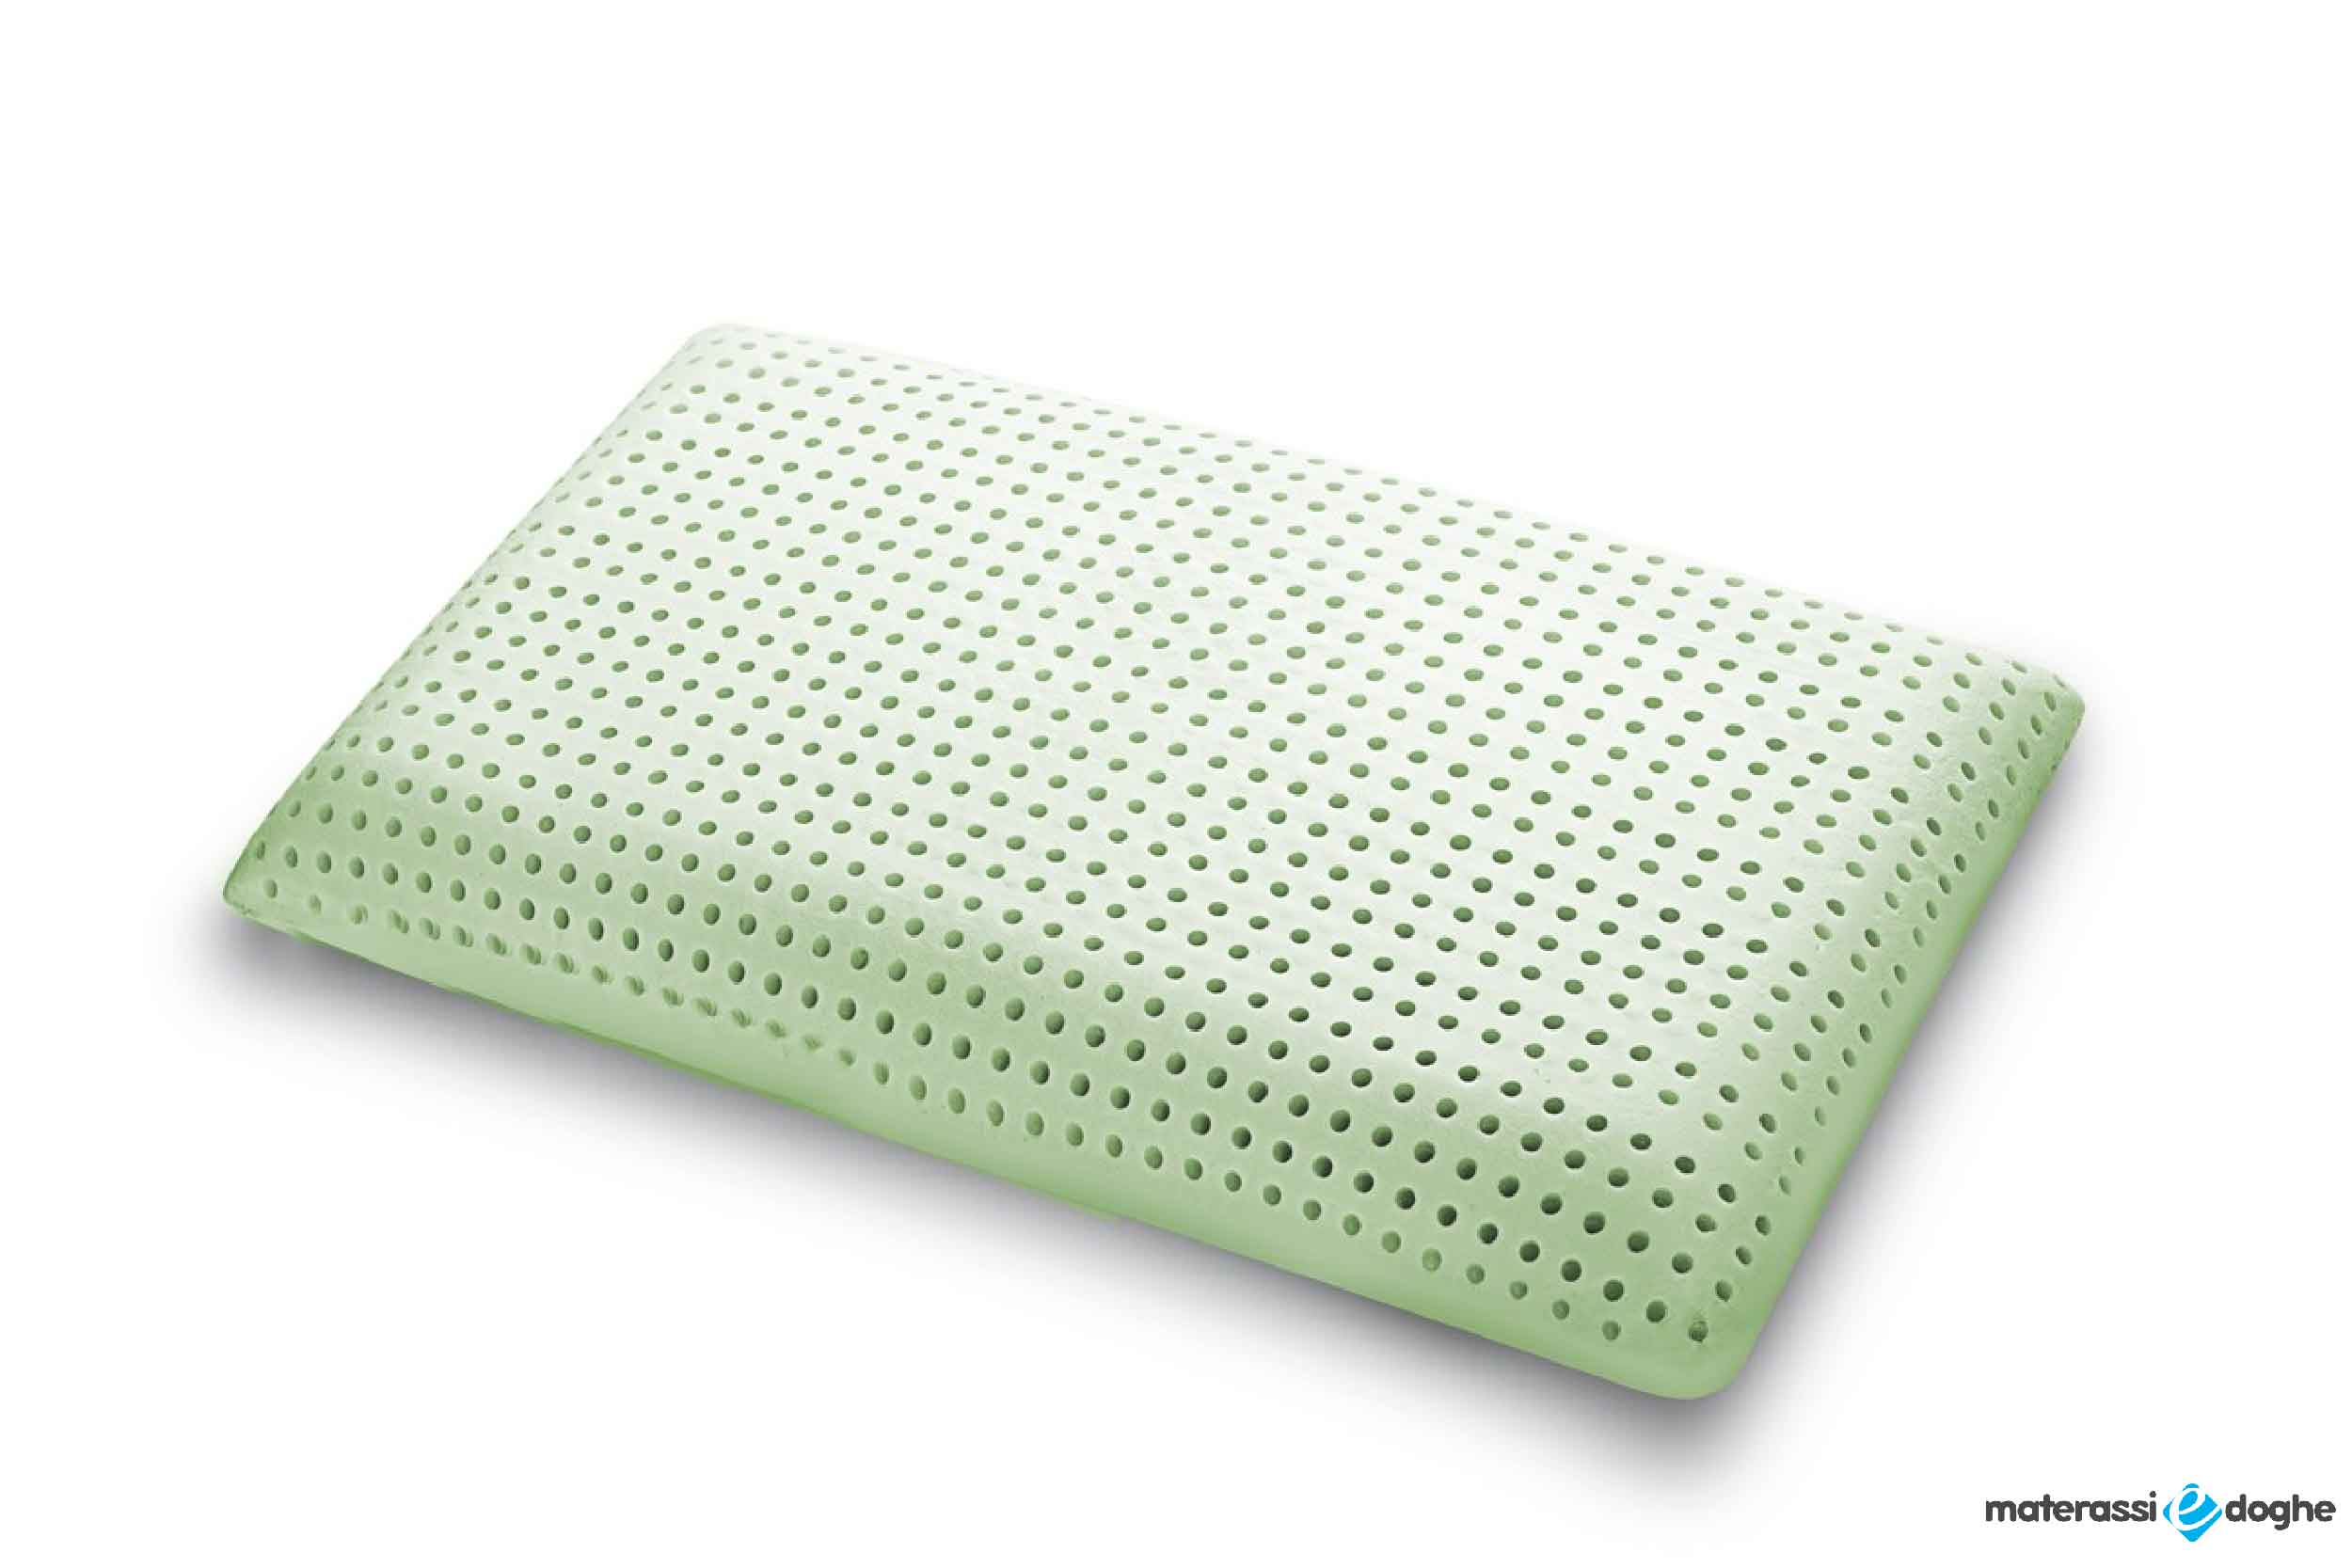 Greenrelax Pillow In MyMemory Foam Thermally Sensitive Breathable With Essential Oils